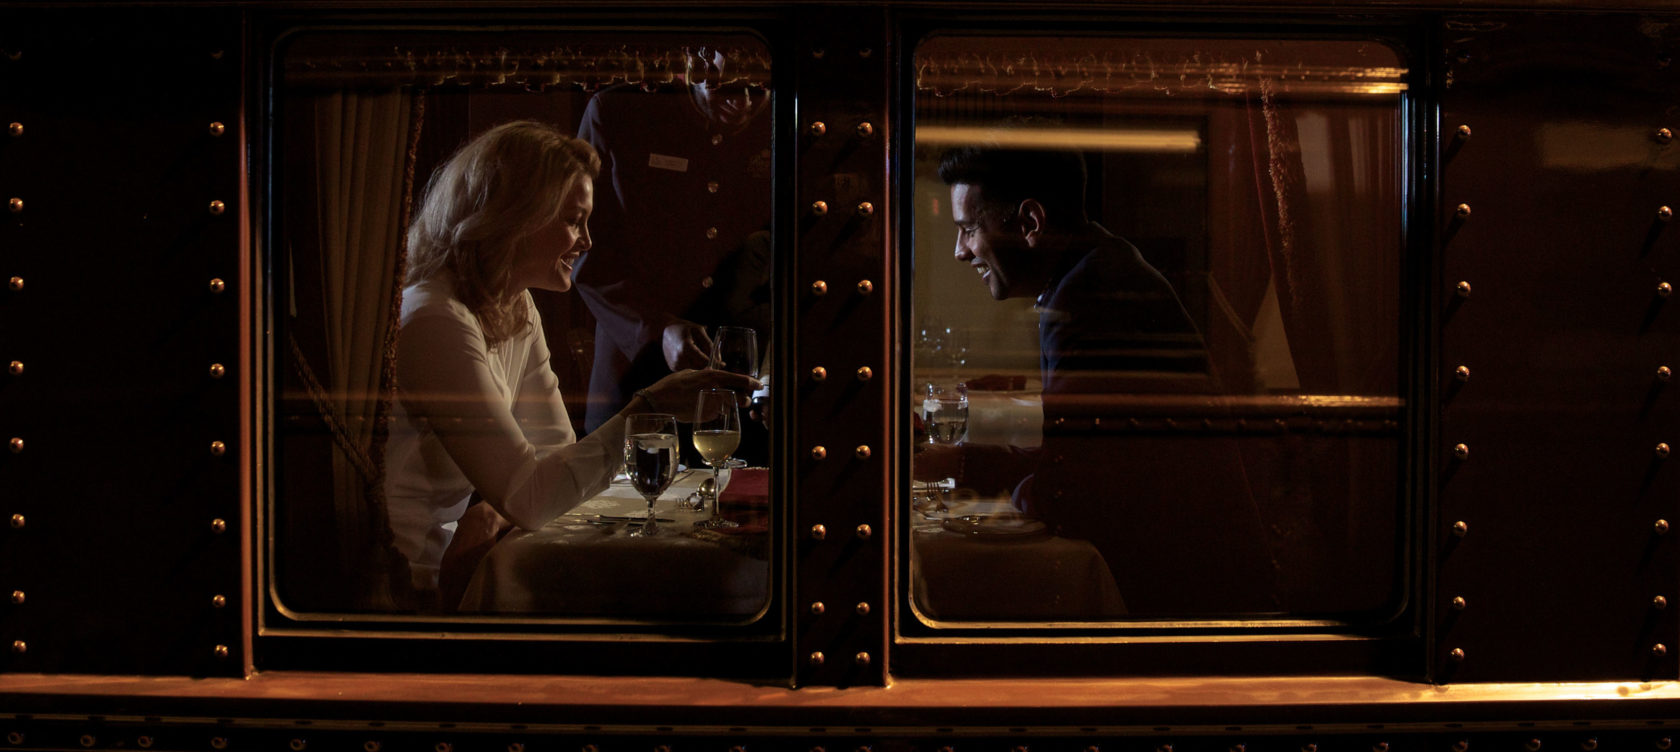 A couple smiling as they have a meal in a railcar.